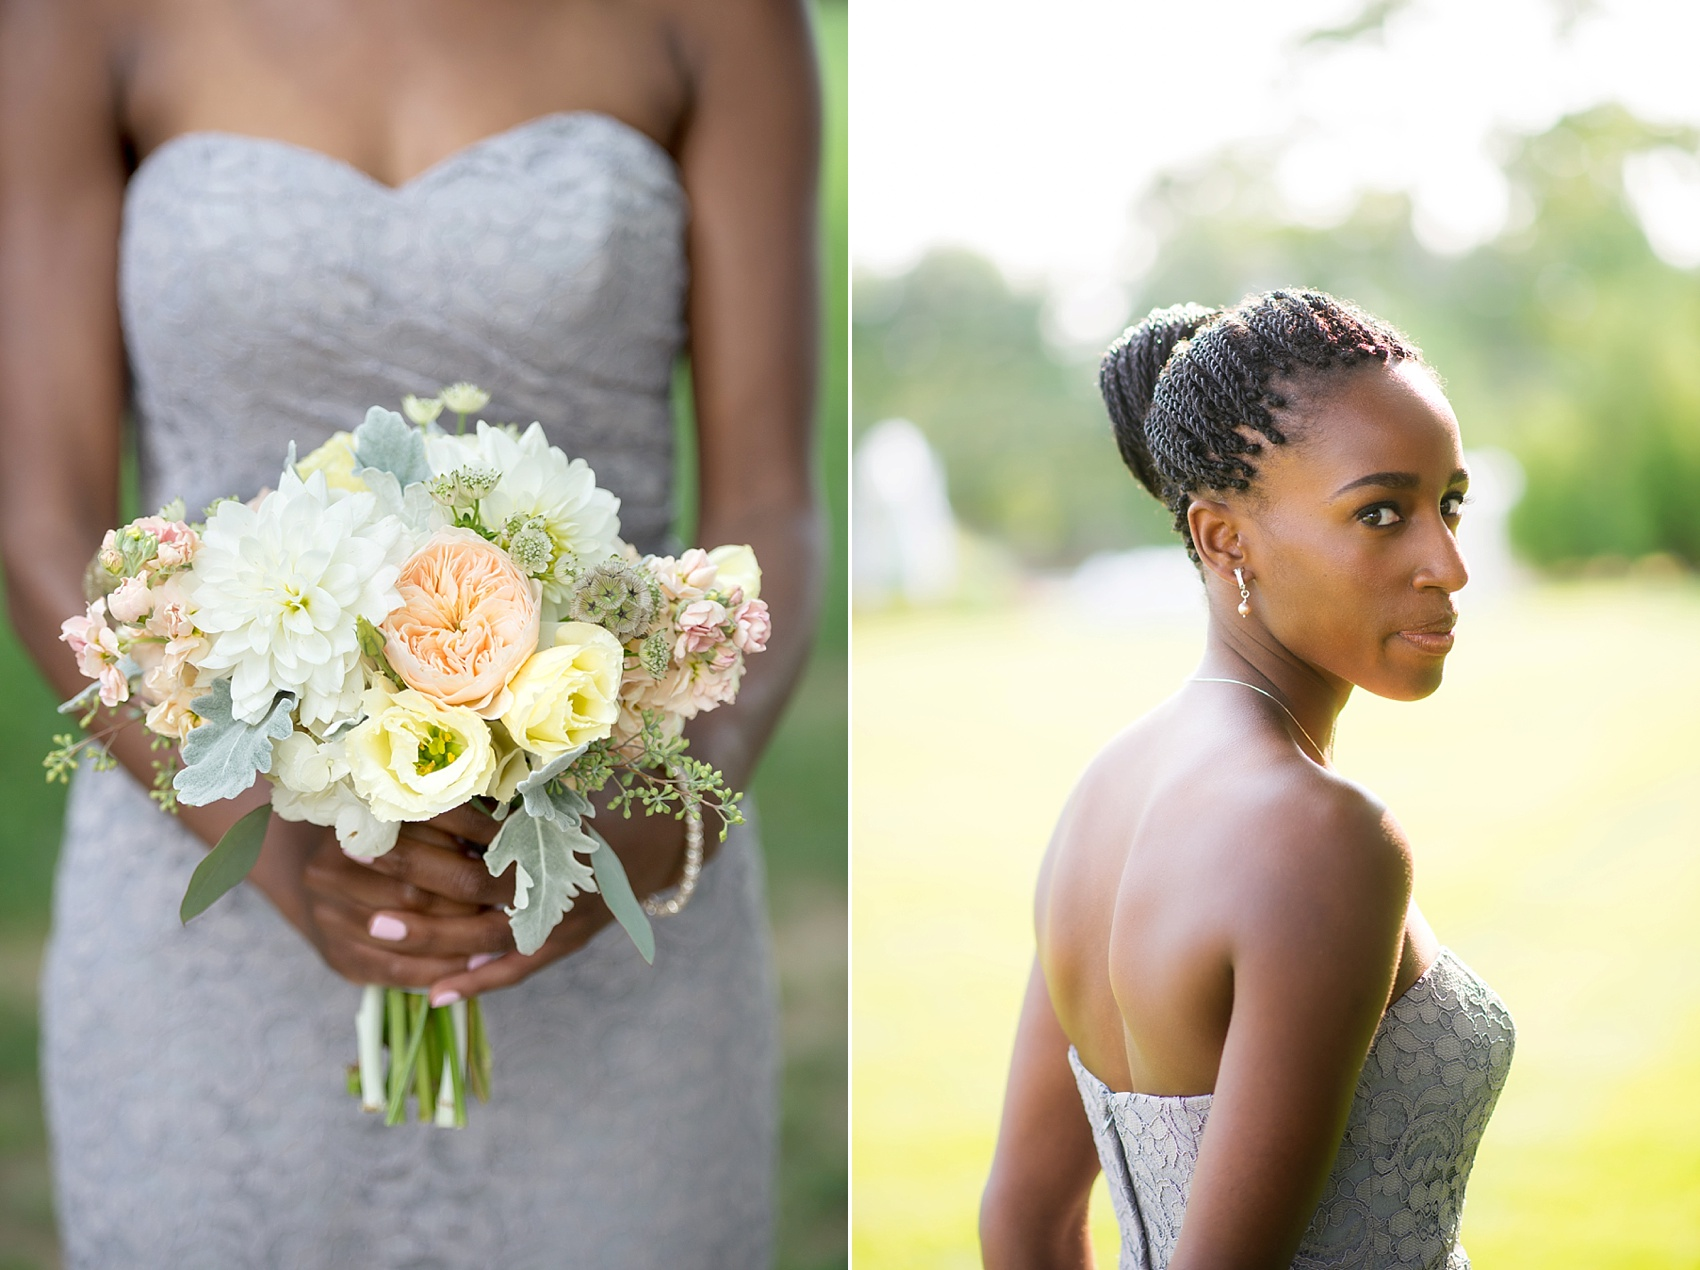 Bridesmaid bouquet of white and peach and grey lace dress at The Conservatory at the Madison Hotel, New Jersey. Photos by Mikkel Paige Photography.